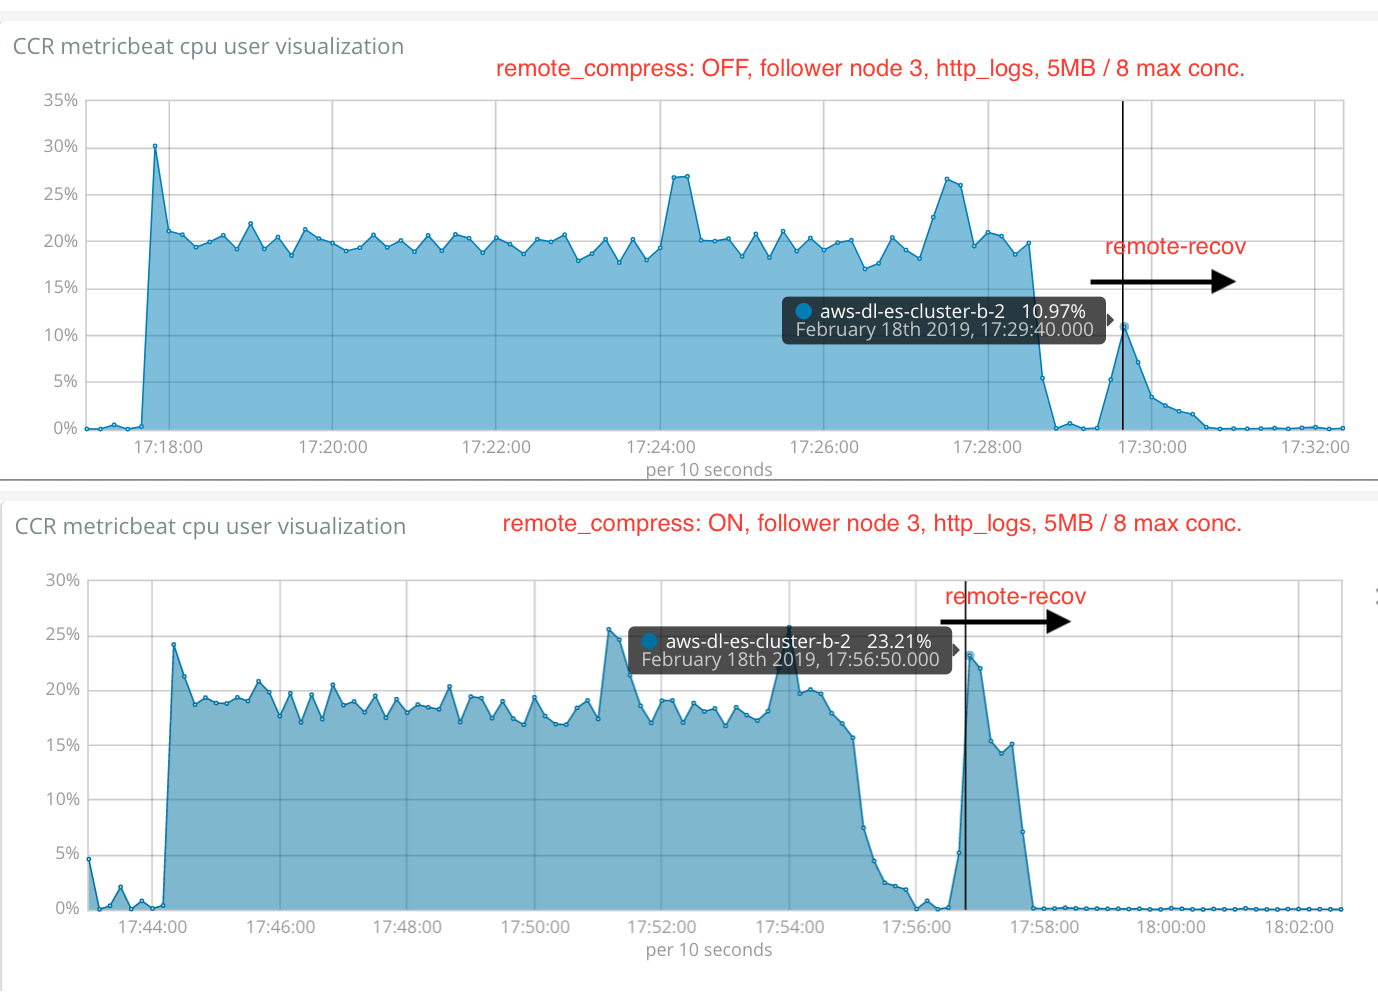 http_logs_java11_cpu_user_follower_2_remote_compress_off_vs_on_5mb_8